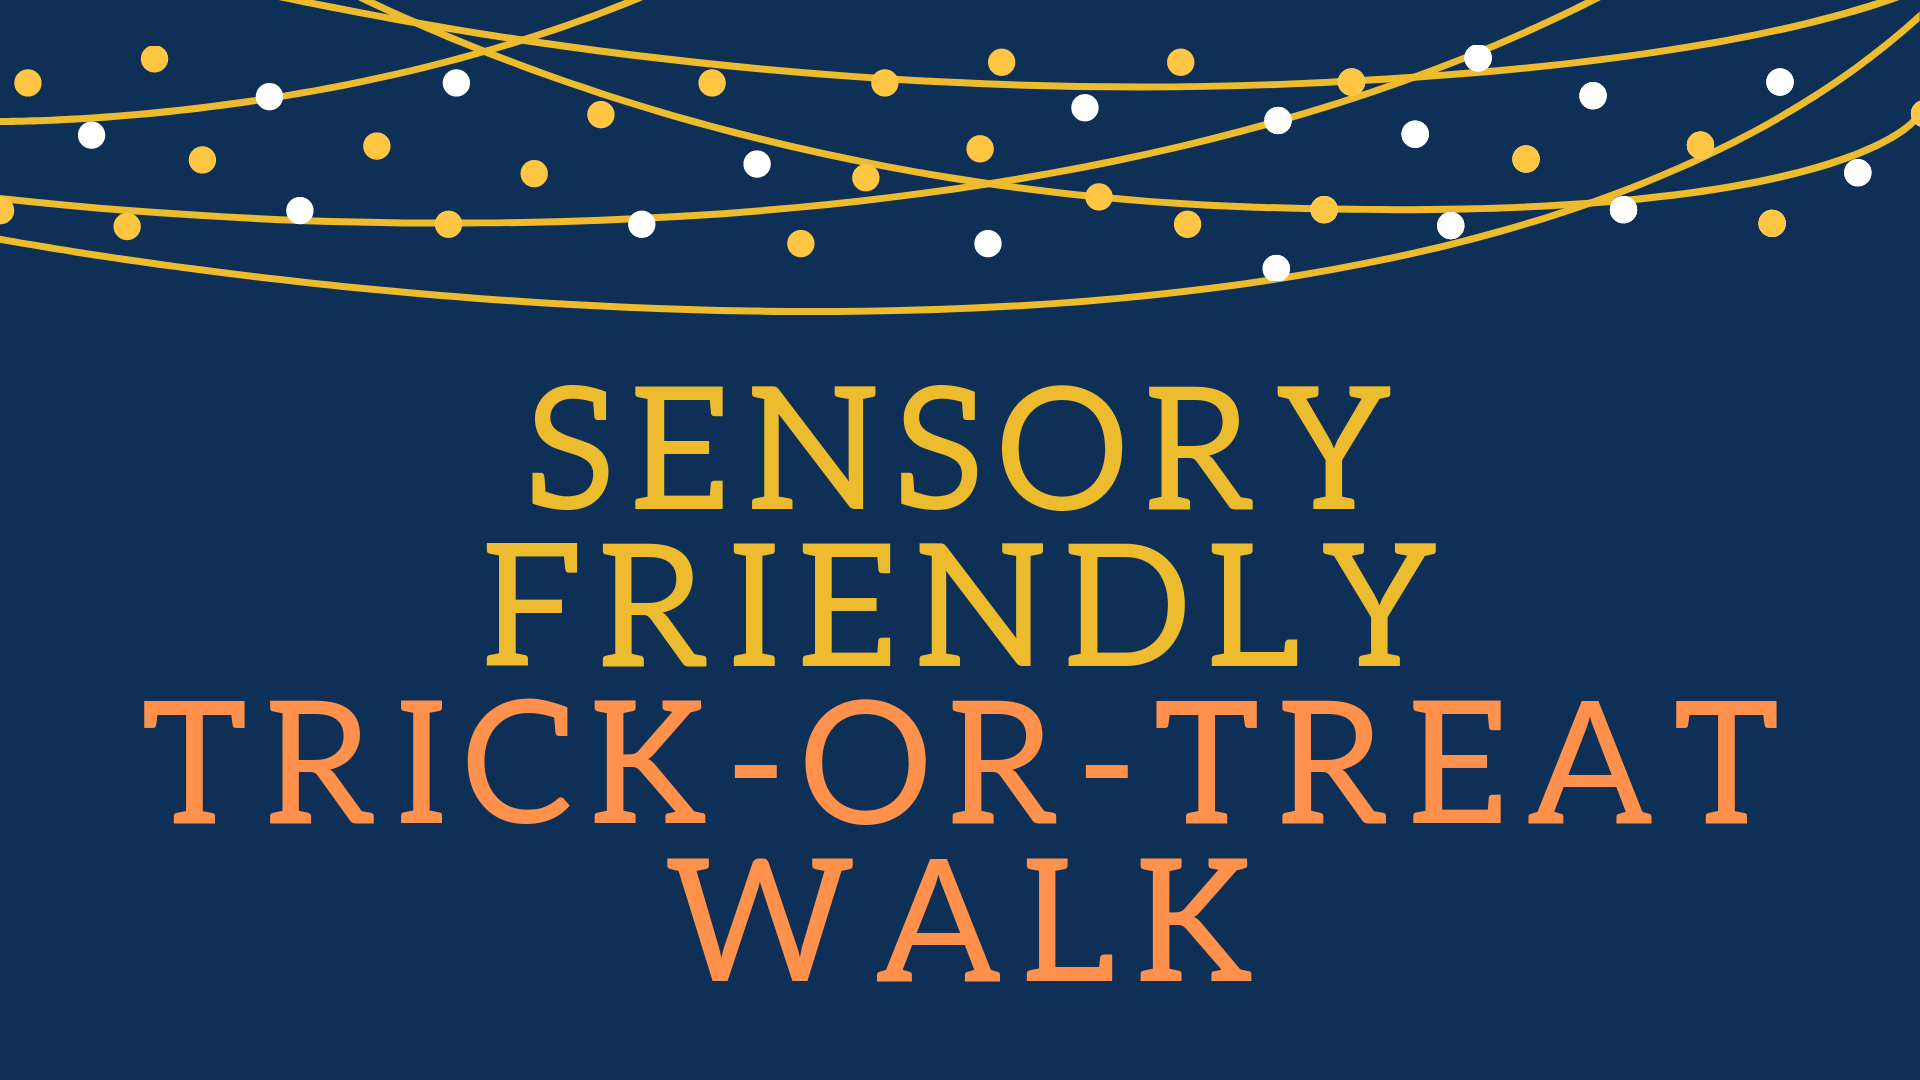 Sensory Friendly Trick-or-Treat Walk